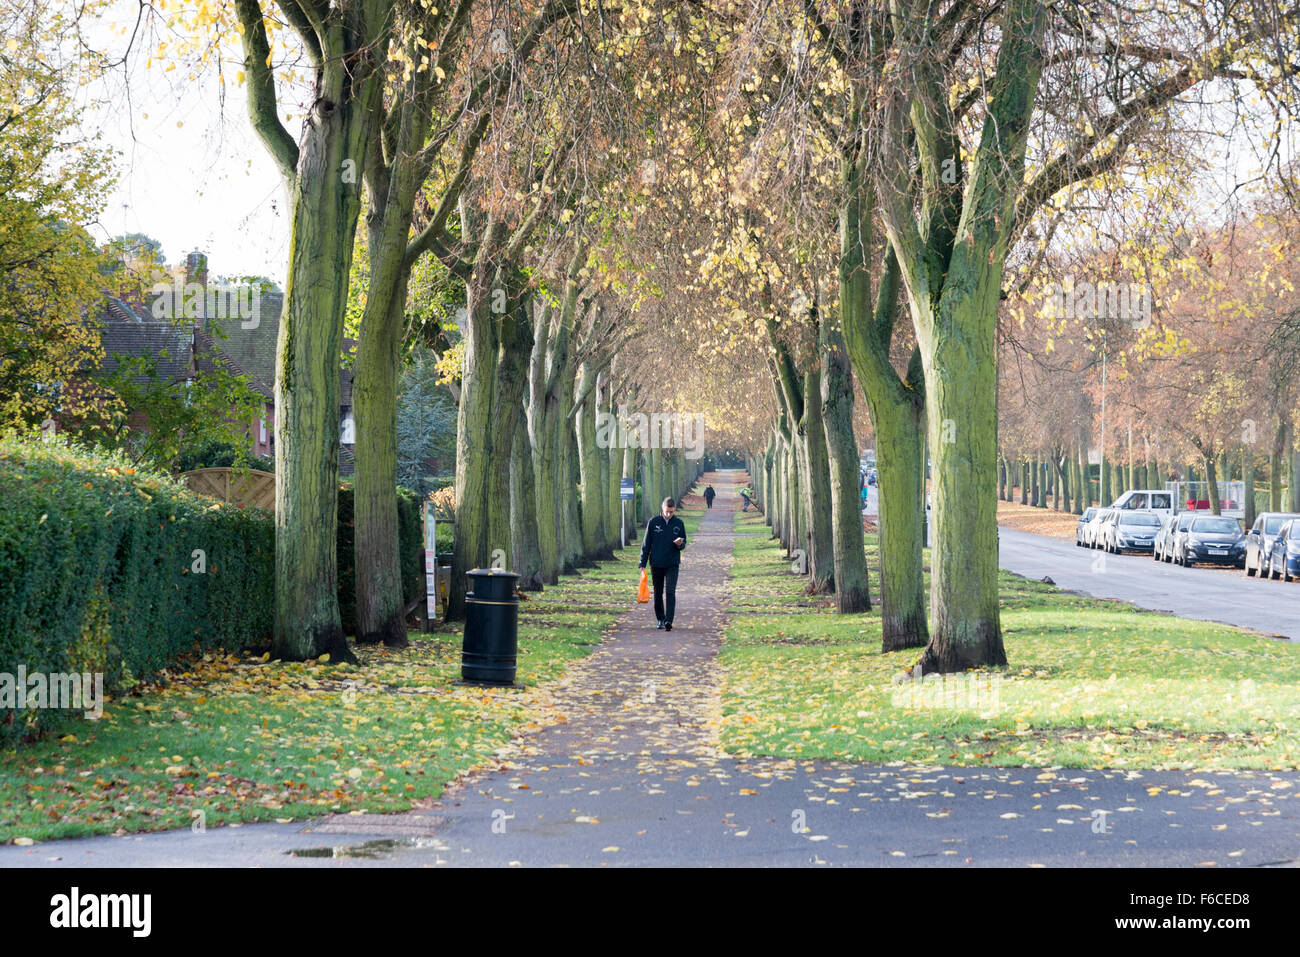 A man walking along a path lined with trees in letchworth for Garden city trees